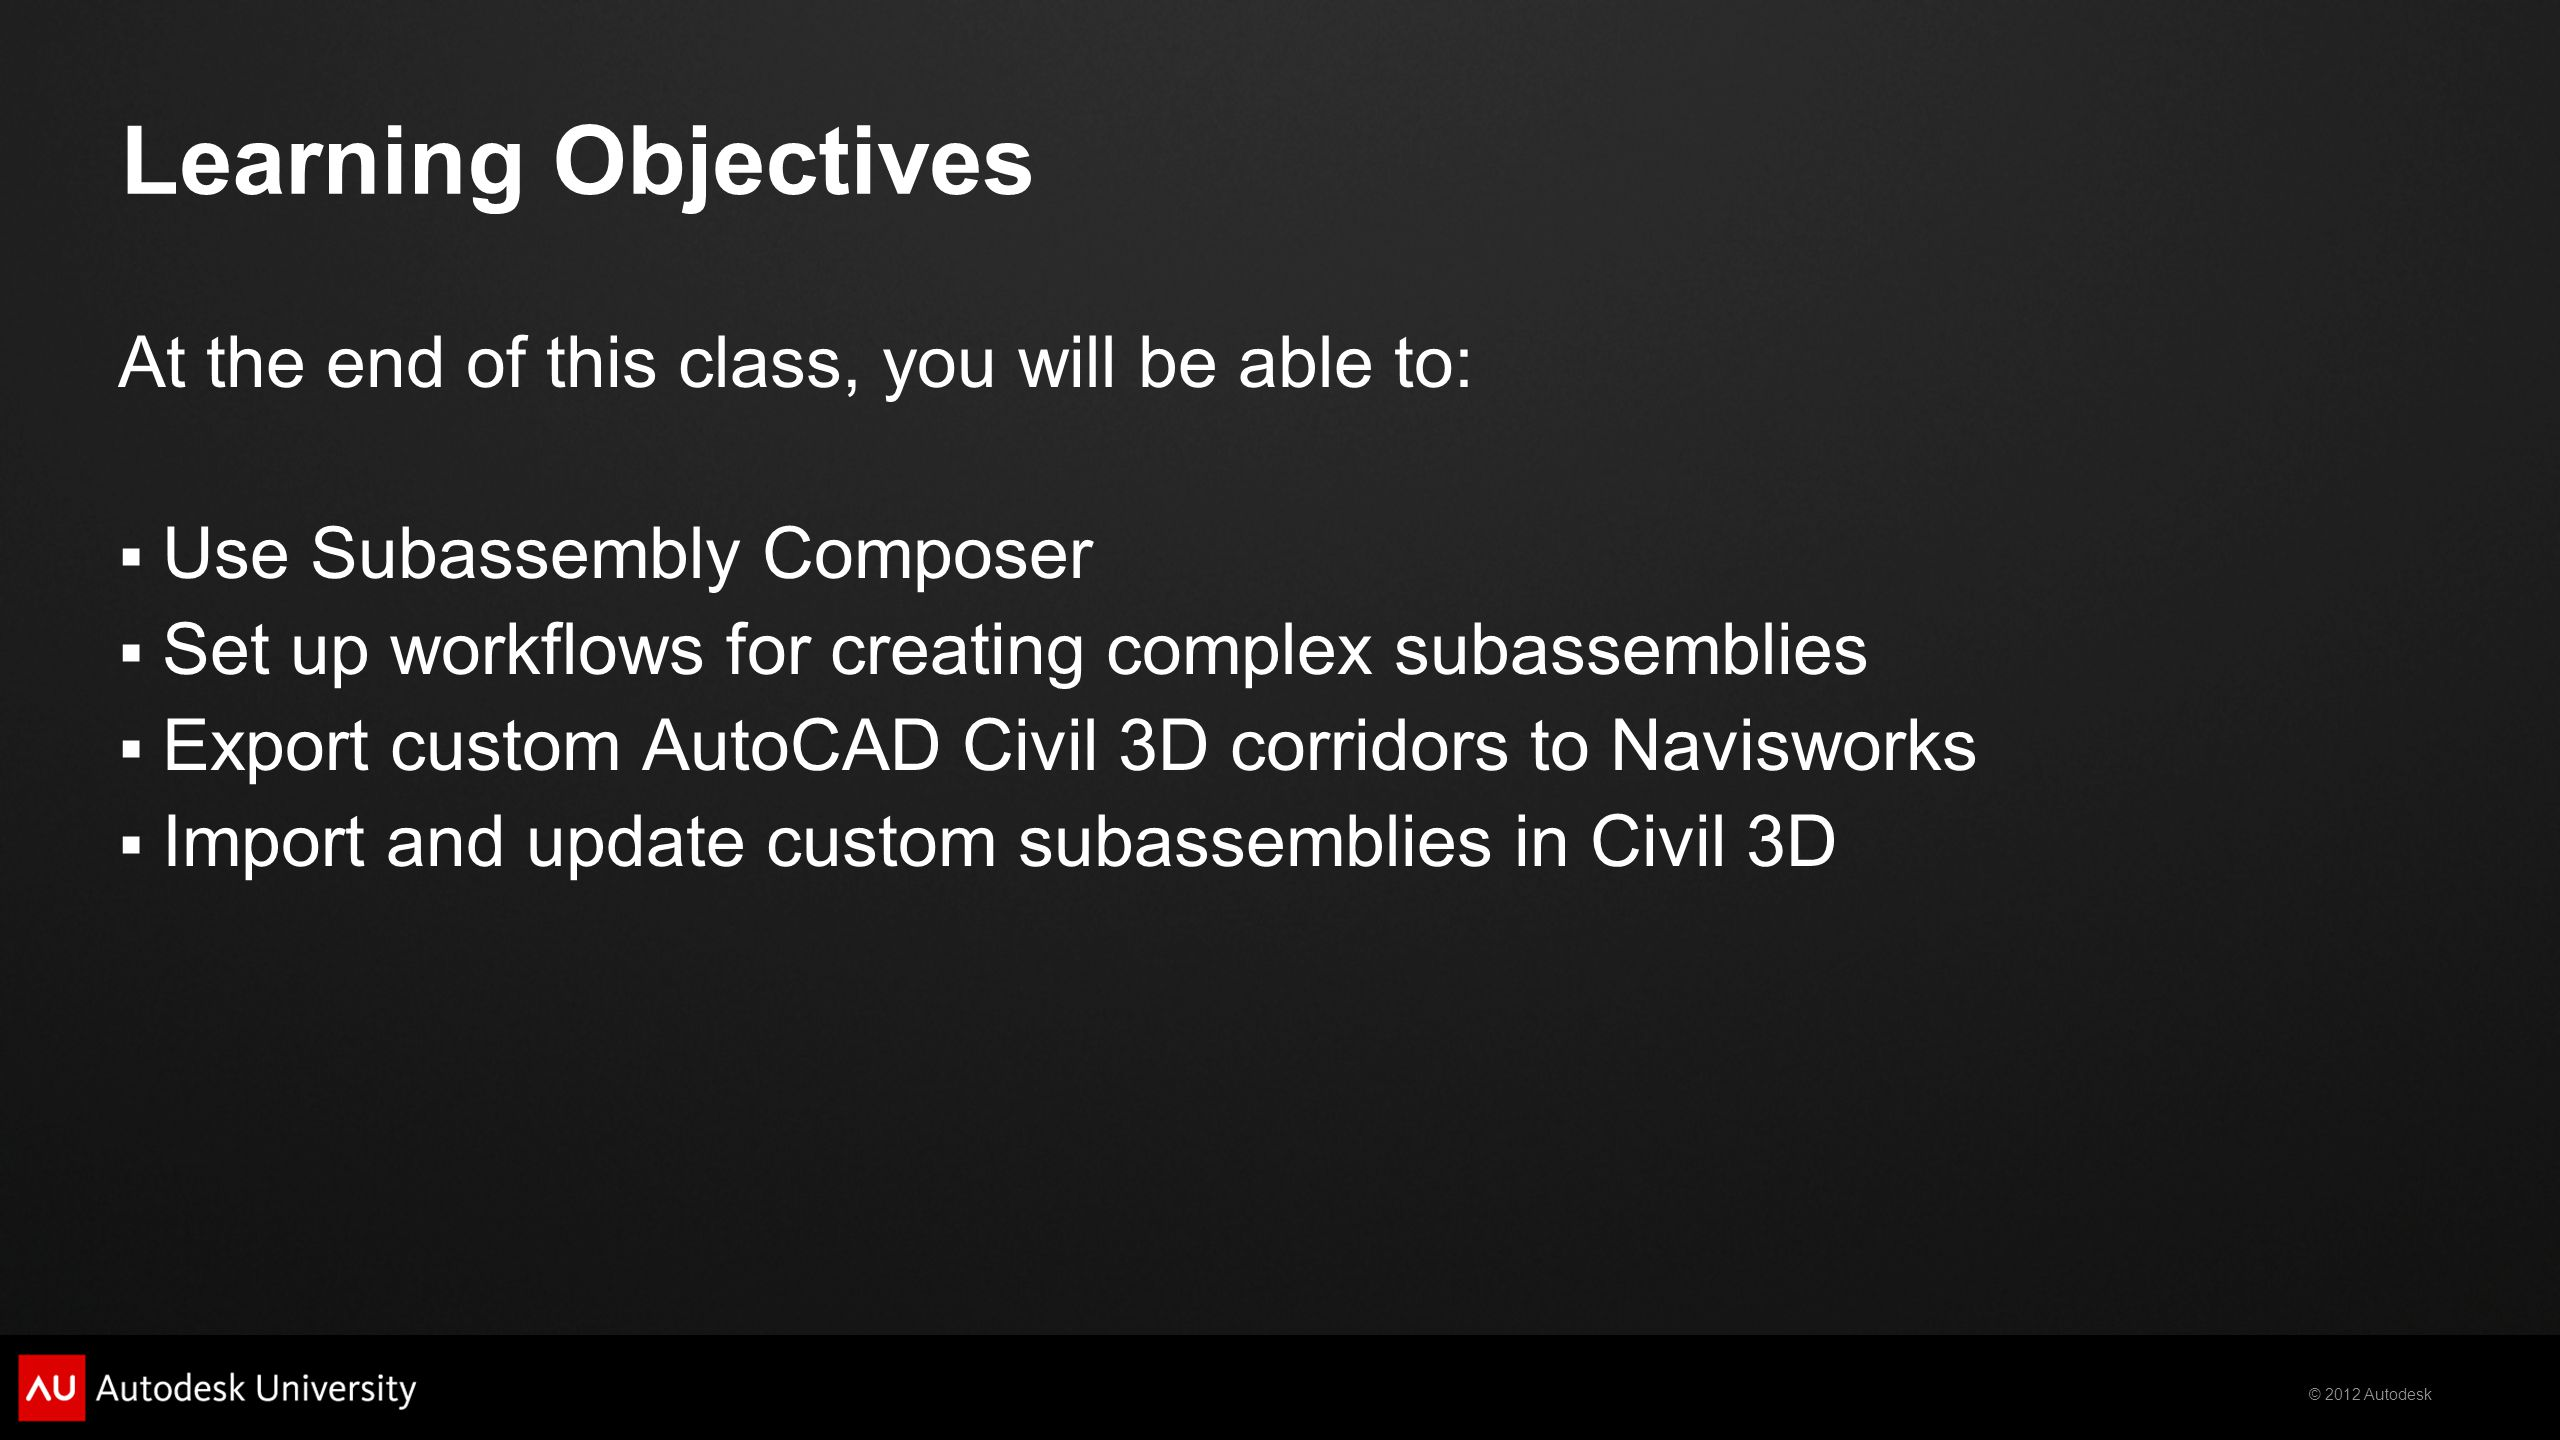 © 2012 Autodesk Learning Objectives At the end of this class, you will be able to:  Use Subassembly Composer  Set up workflows for creating complex subassemblies  Export custom AutoCAD Civil 3D corridors to Navisworks  Import and update custom subassemblies in Civil 3D